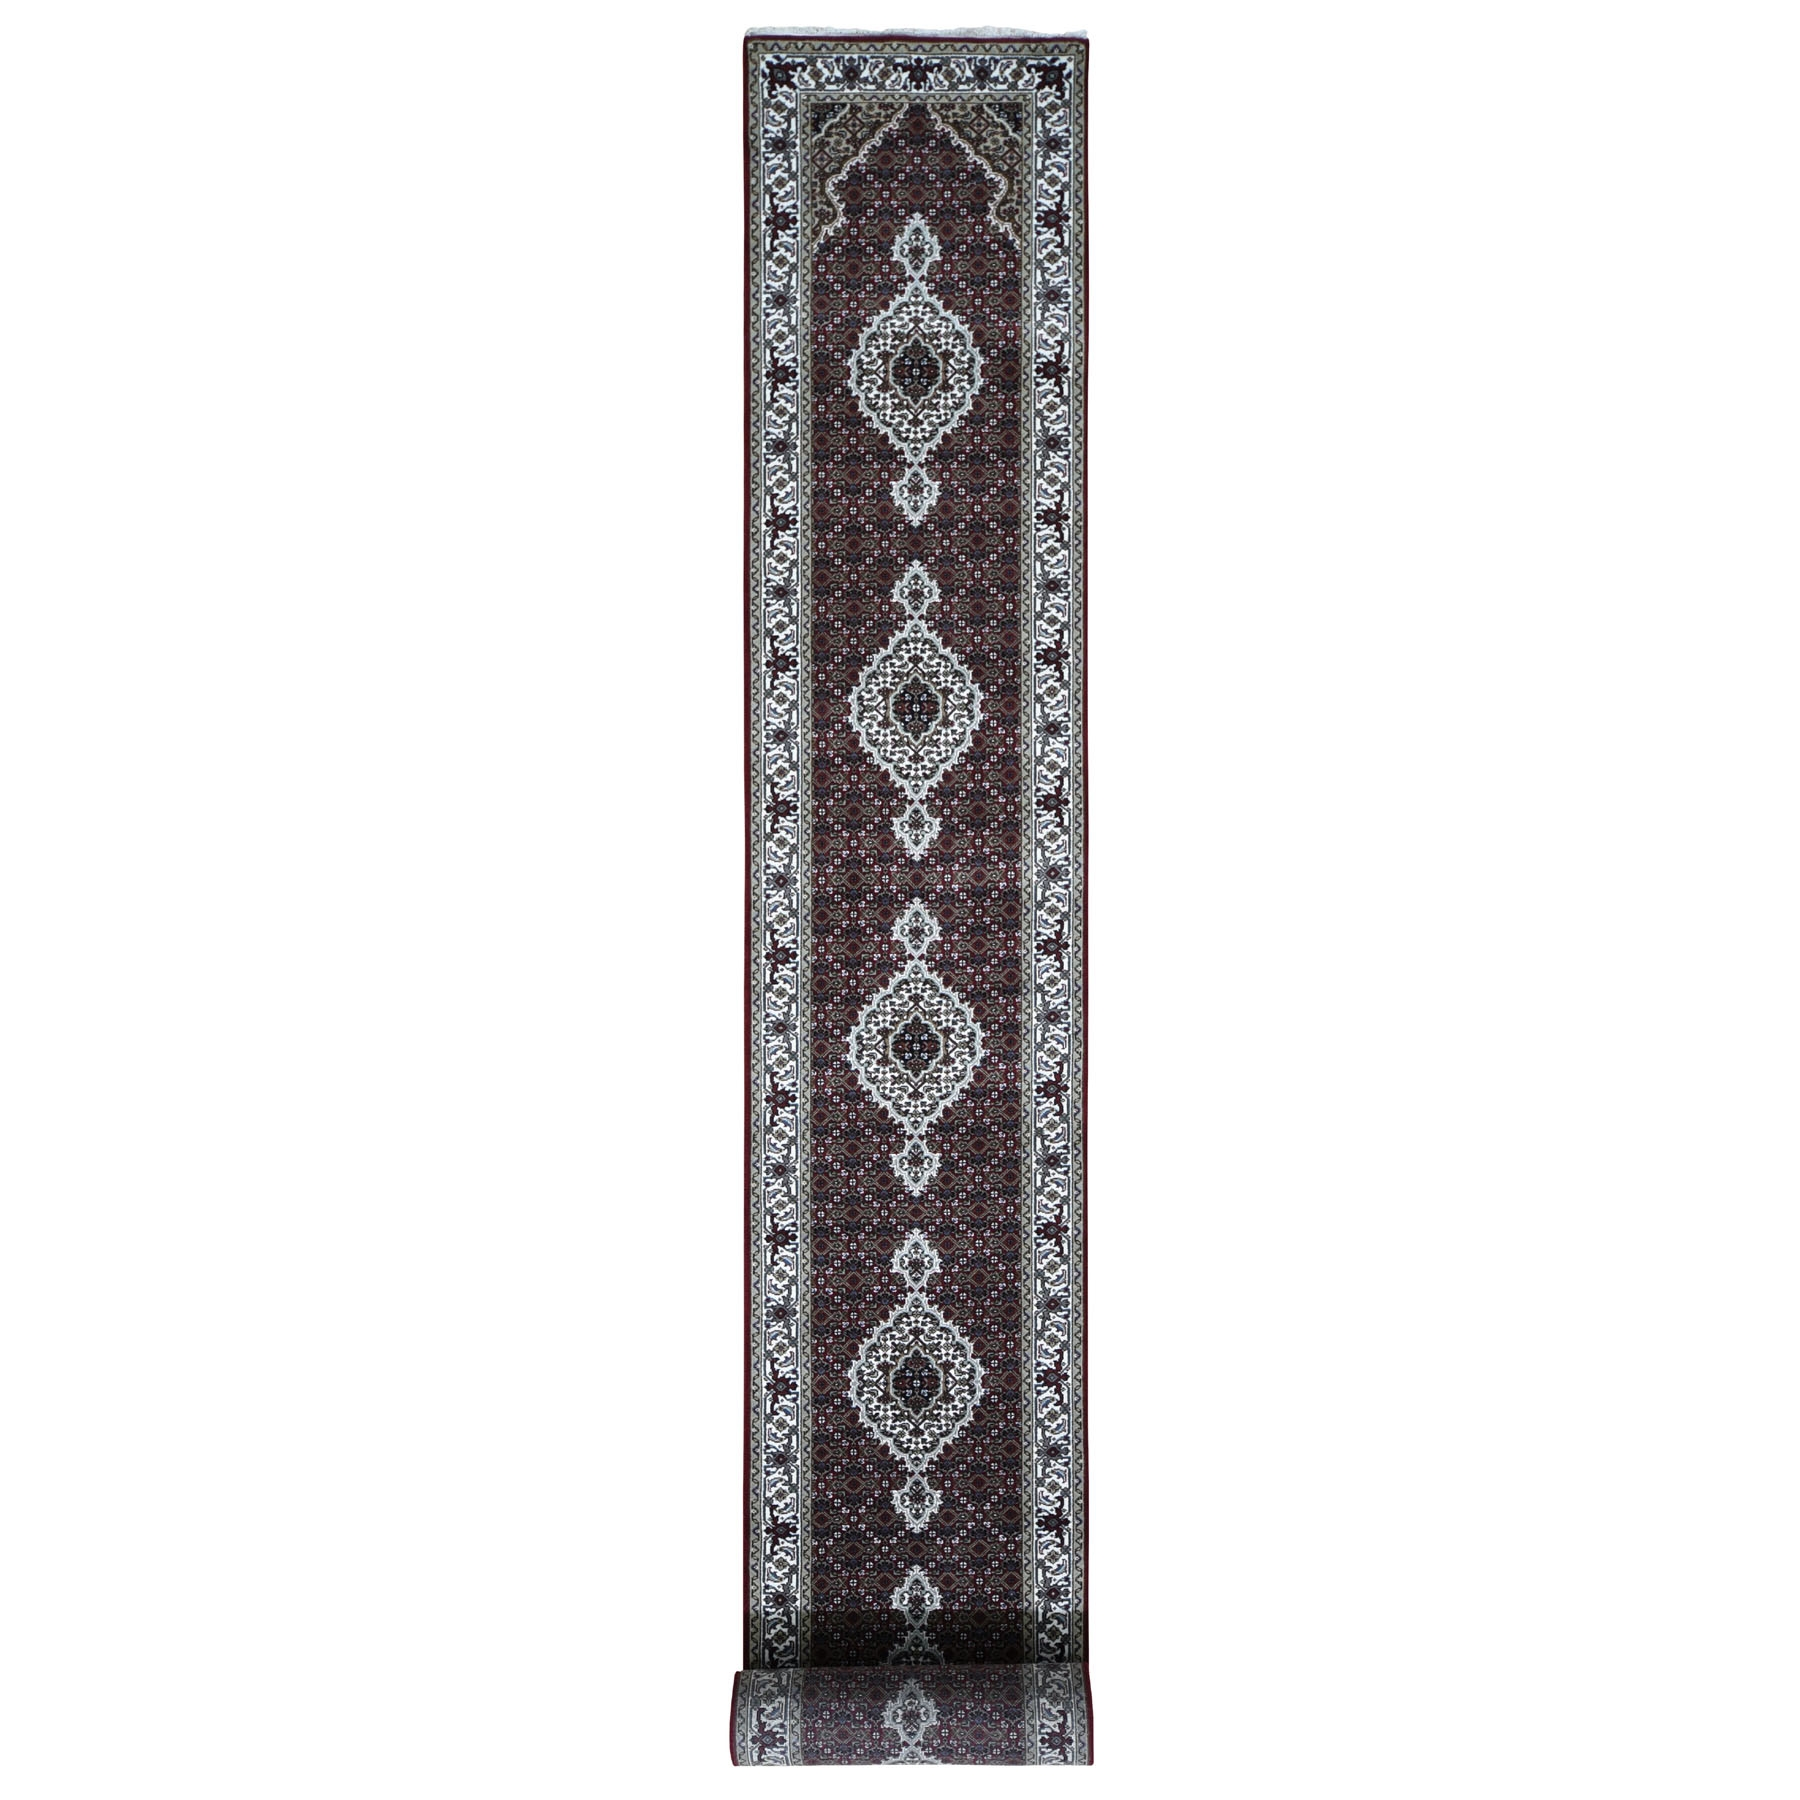 Pirniakan Collection Hand Knotted Red Rug No: 196632